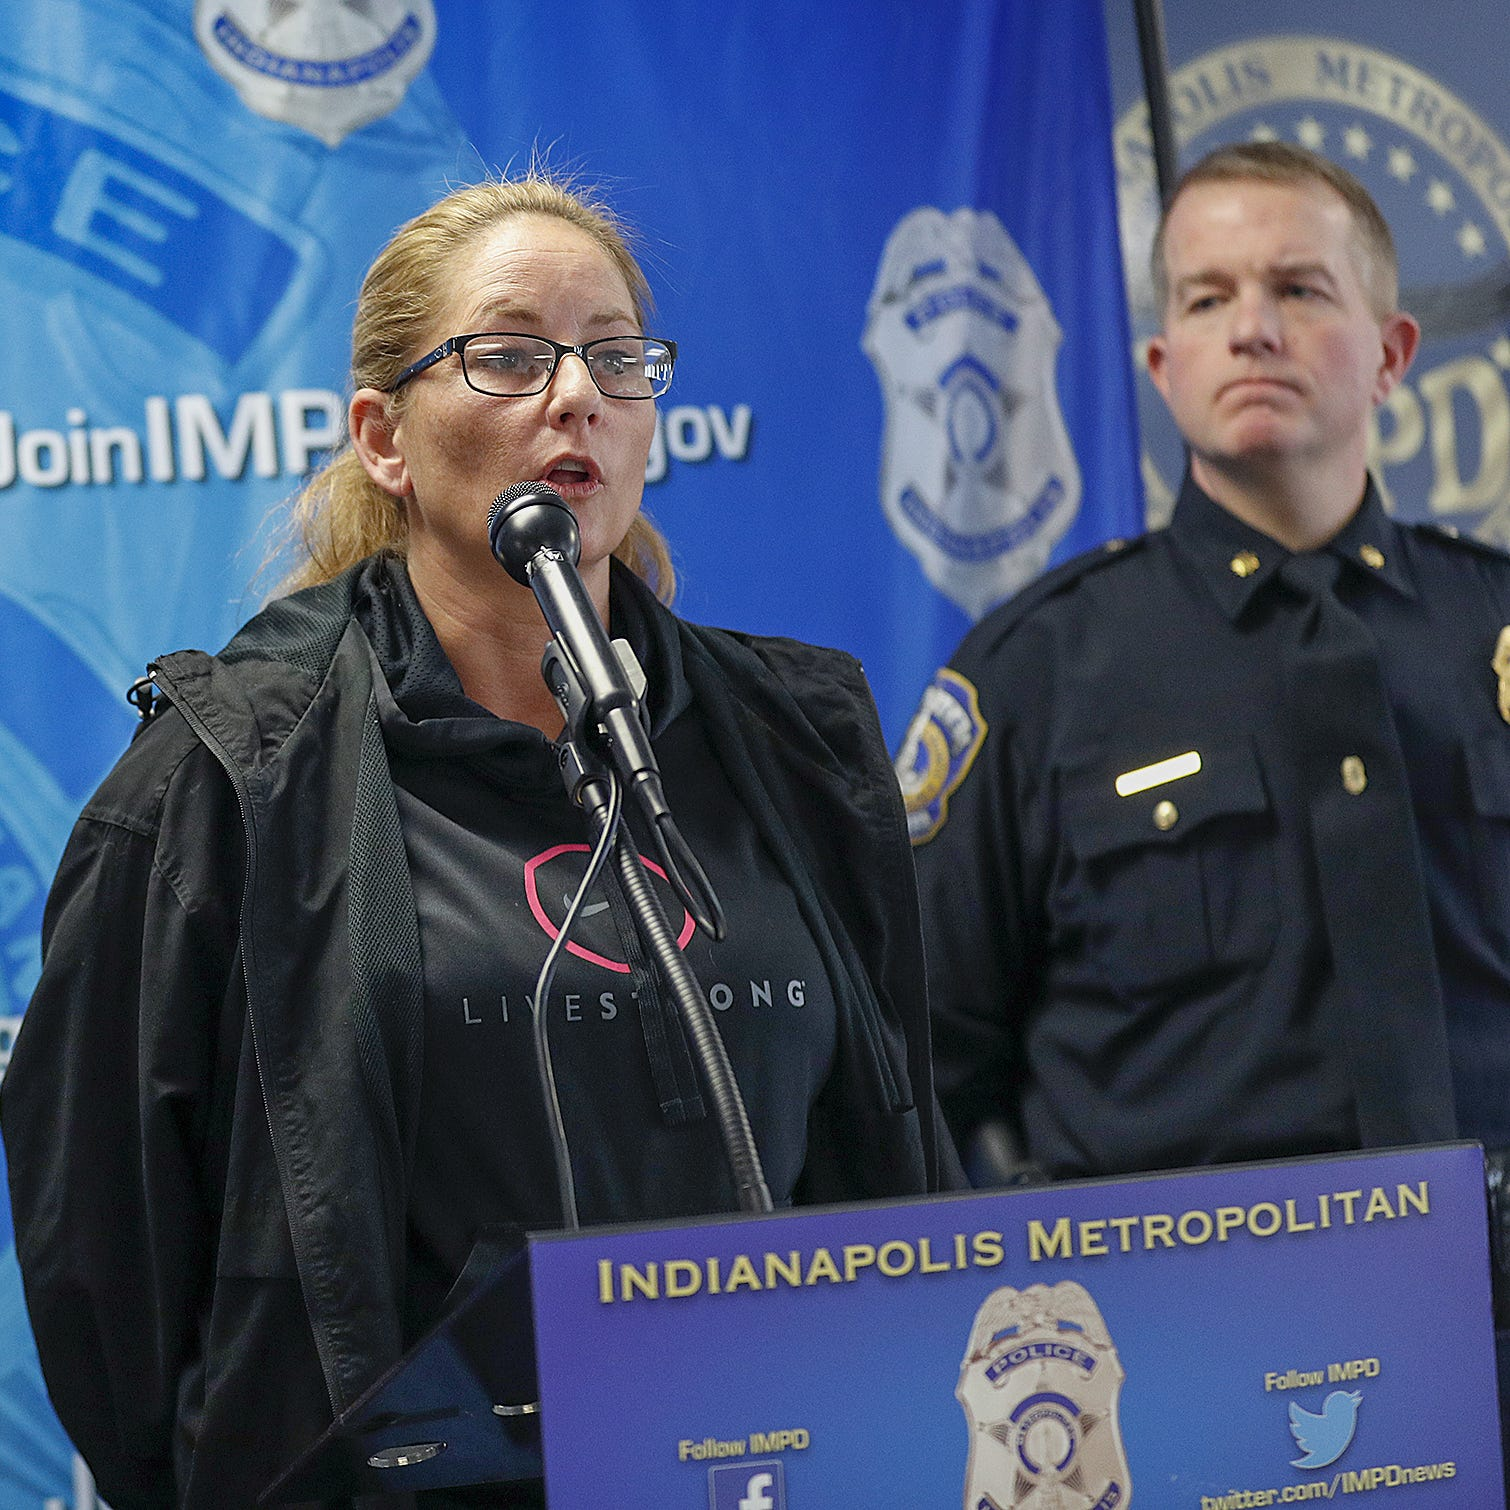 Police: Search for missing Indianapolis 8-month-old now classified as homicide investigation